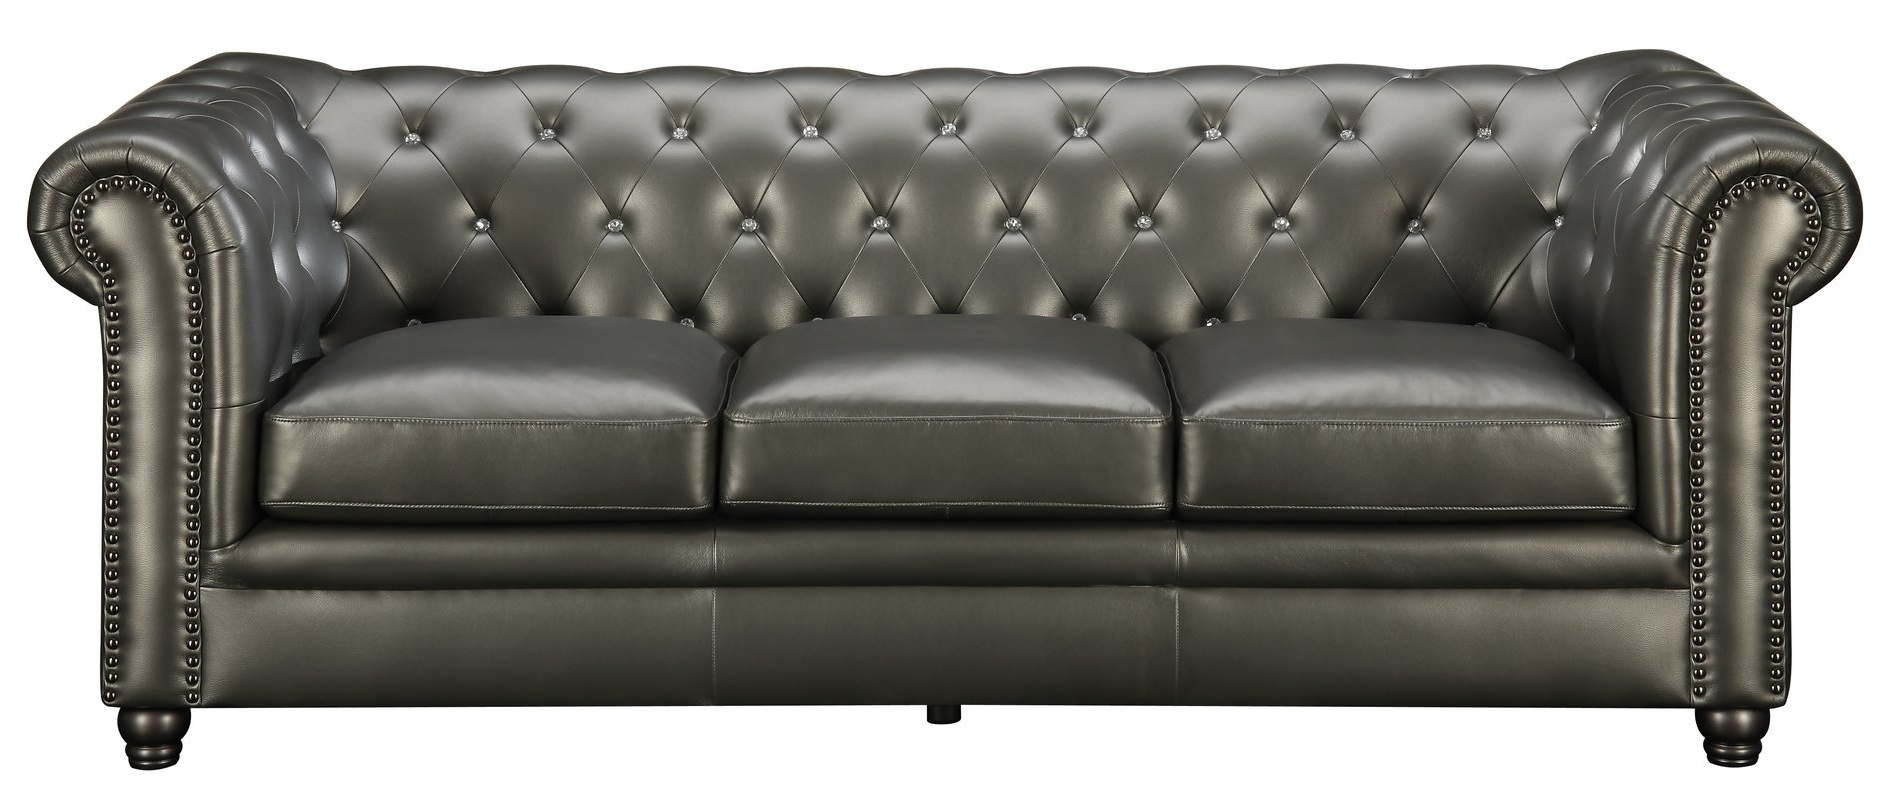 Wayfair Within 2019 Chesterfield Sofas (View 12 of 20)